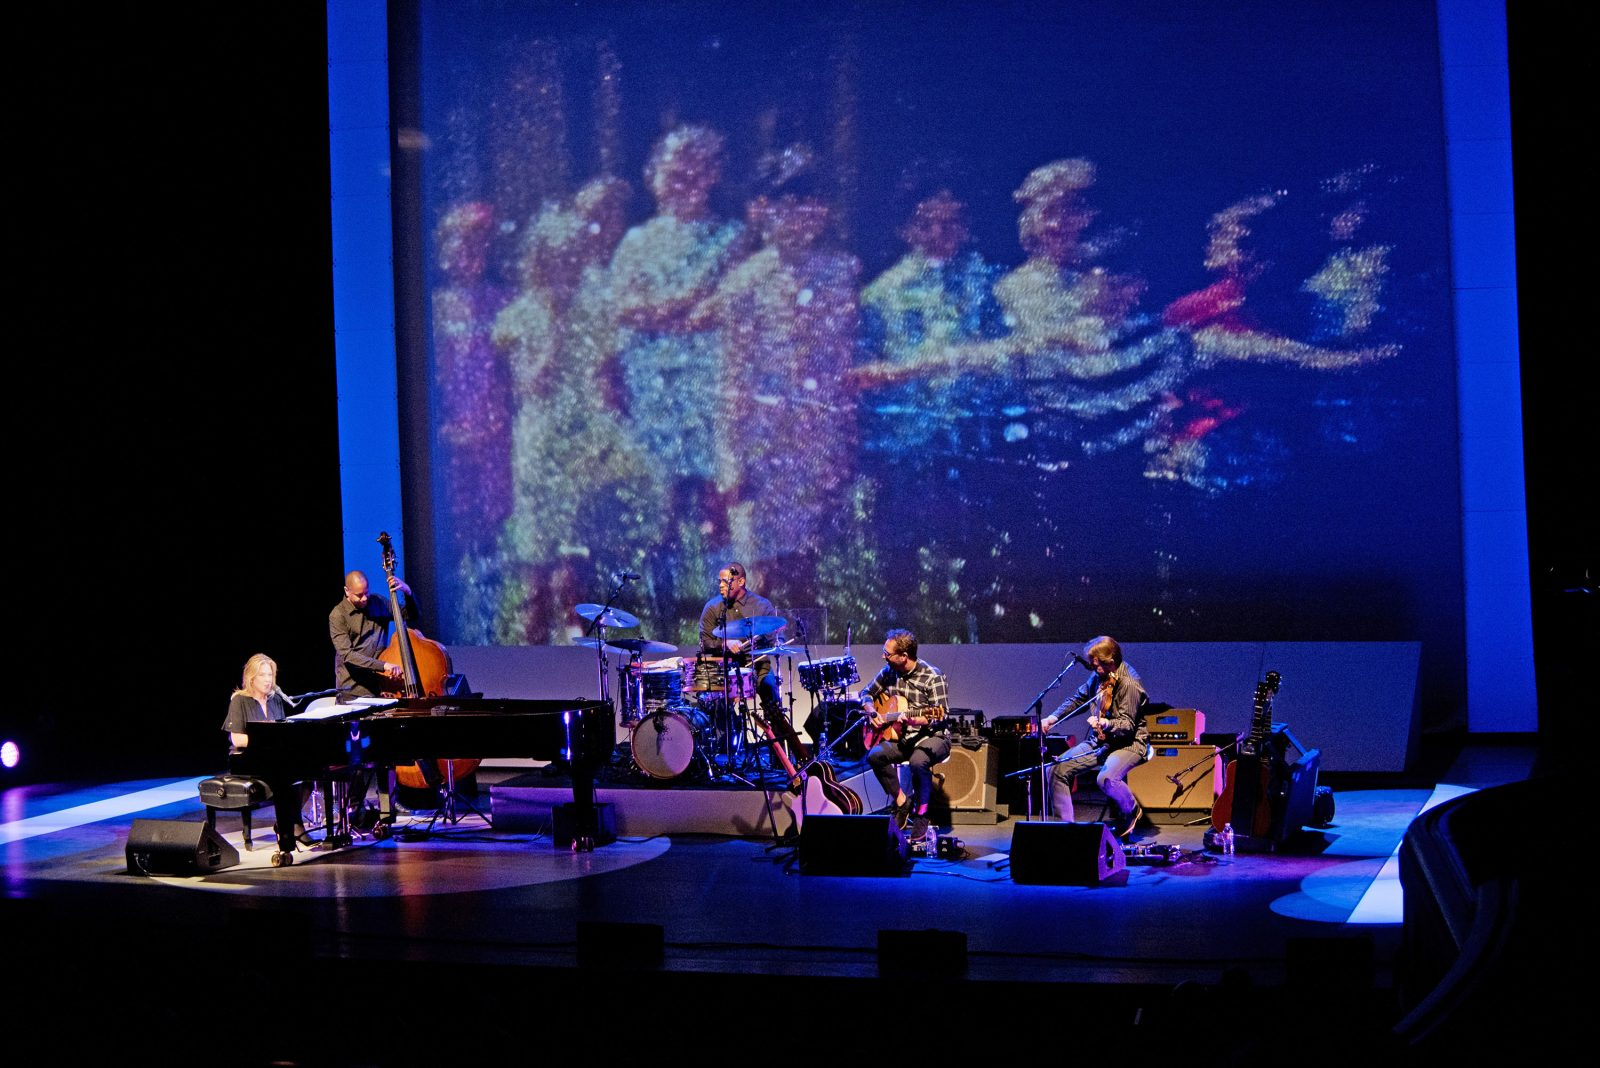 Amy Friend's work featured on Diana Krall's tour